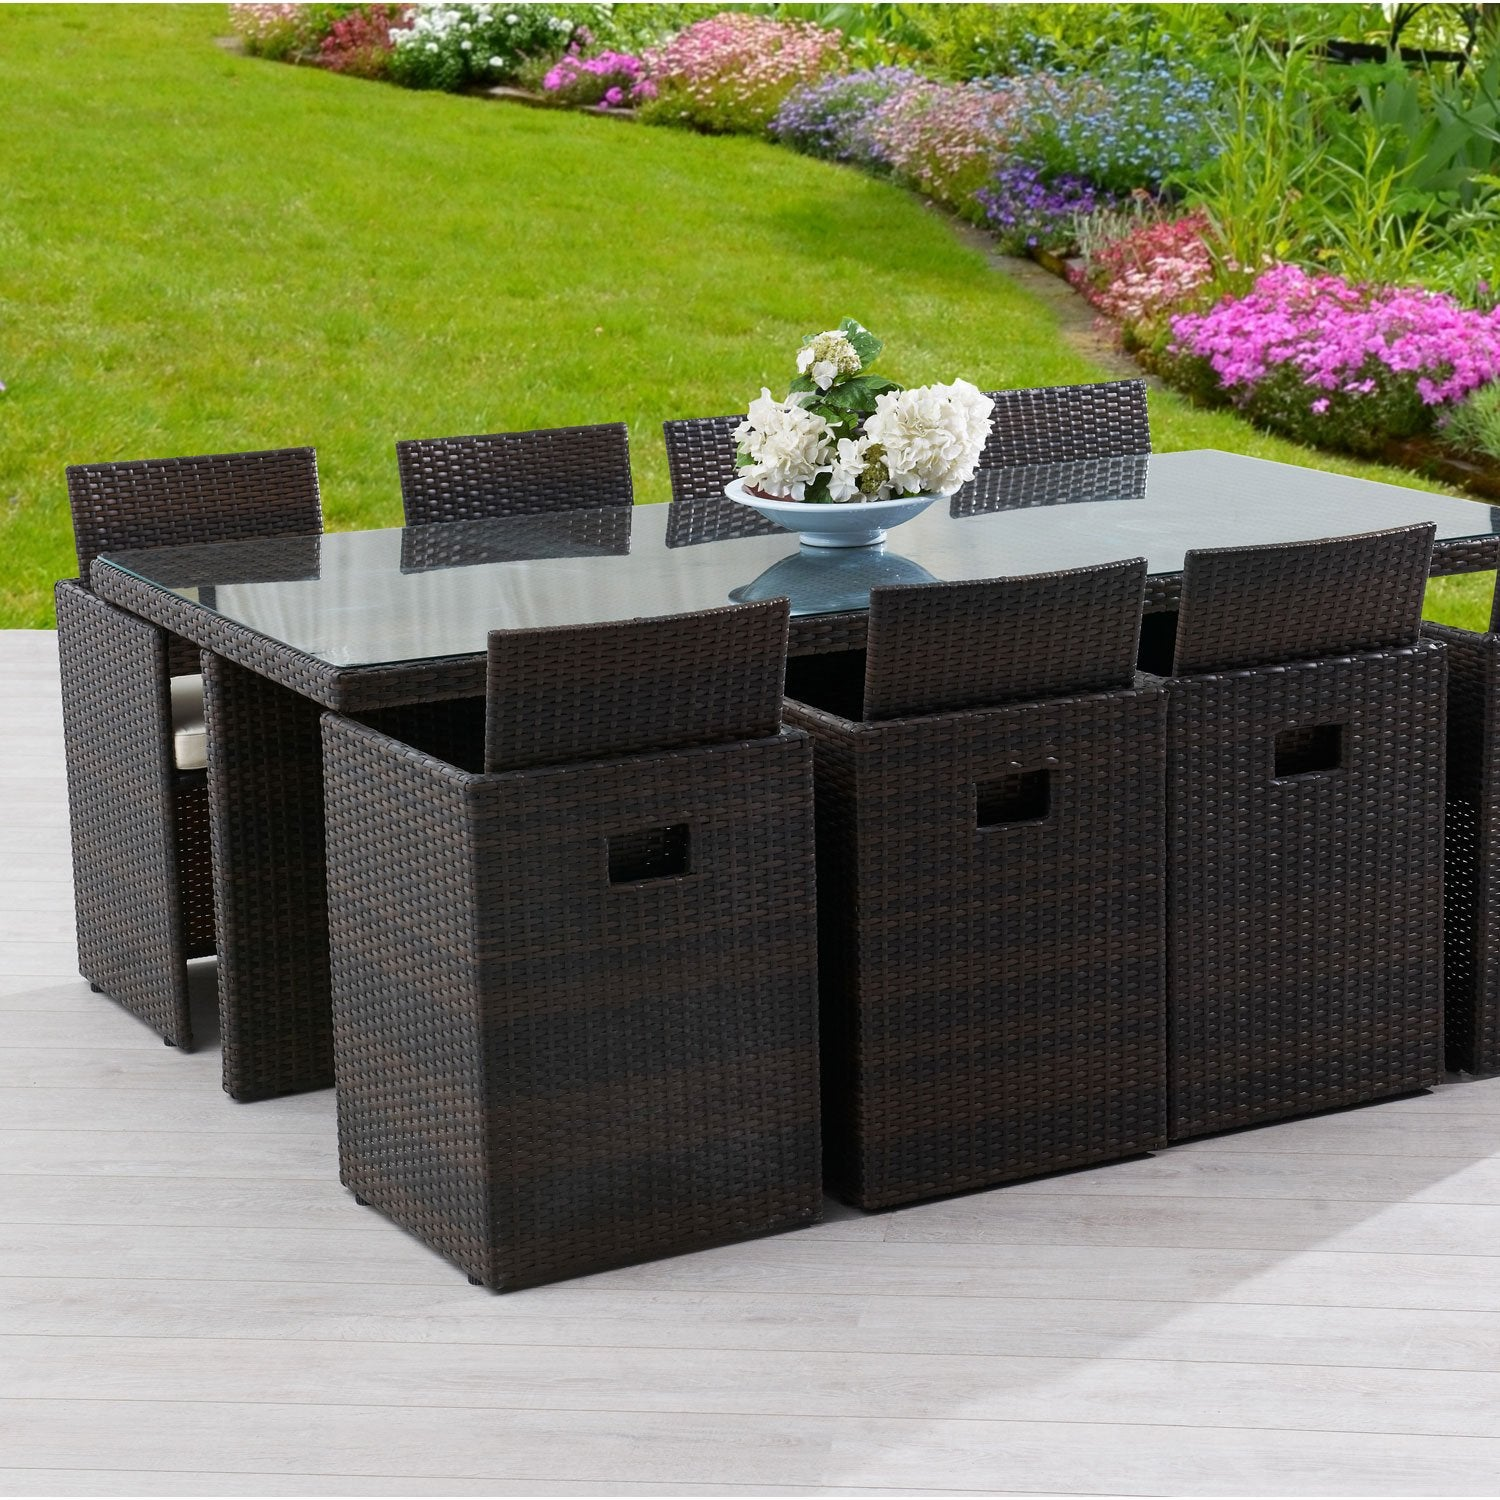 Salon de jardin encastrable r sine tress e marron 1 table - Table plastique jardin carrefour ...